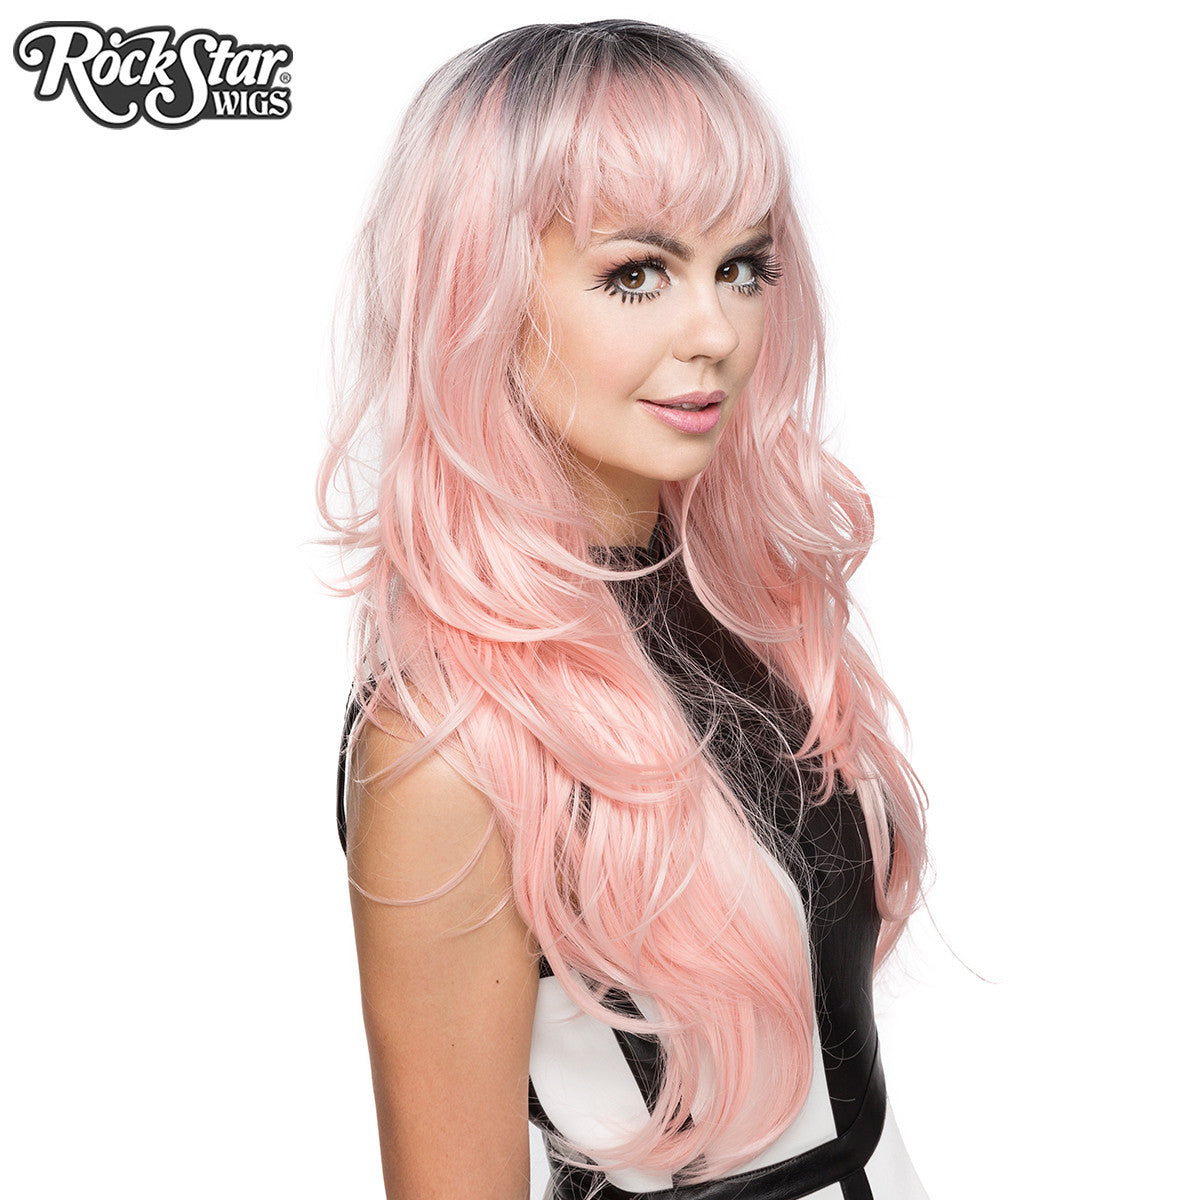 RockStar Wigs® <br> Uptown Girl™ Collection - Central Pink West -00229